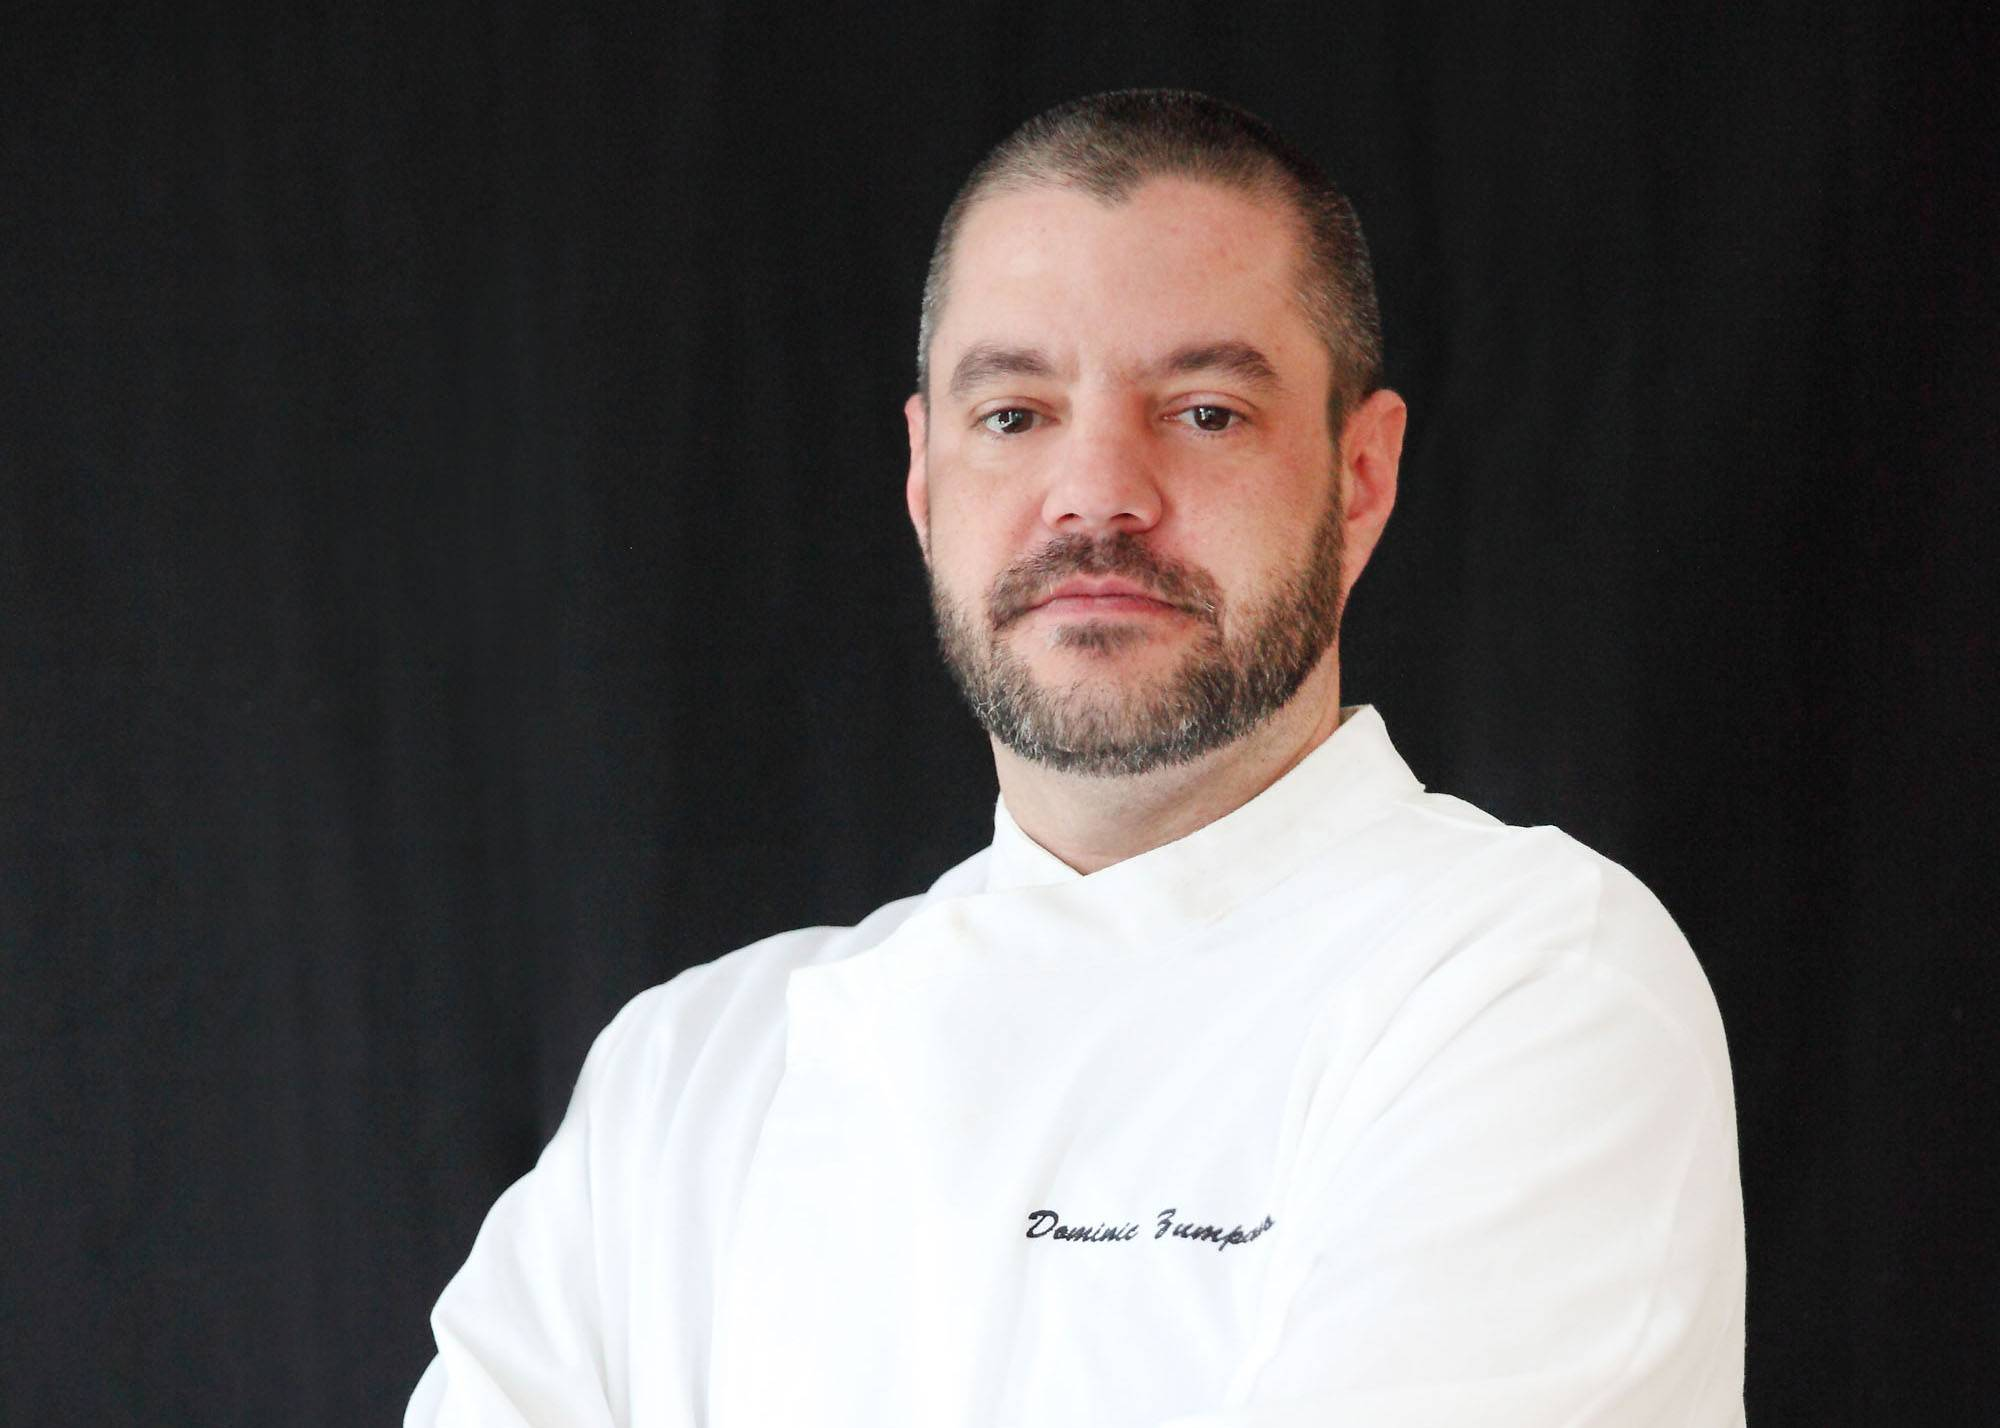 Chef Dominic Zumpano - Advertising executive Steve Platcow will open a new steakhouse in Highwood in early July. The restaurant P.M. Prime will offer traditional steakhouse fare, and also some modern interpretations created by Chef Dominic Zumpano.CSaville